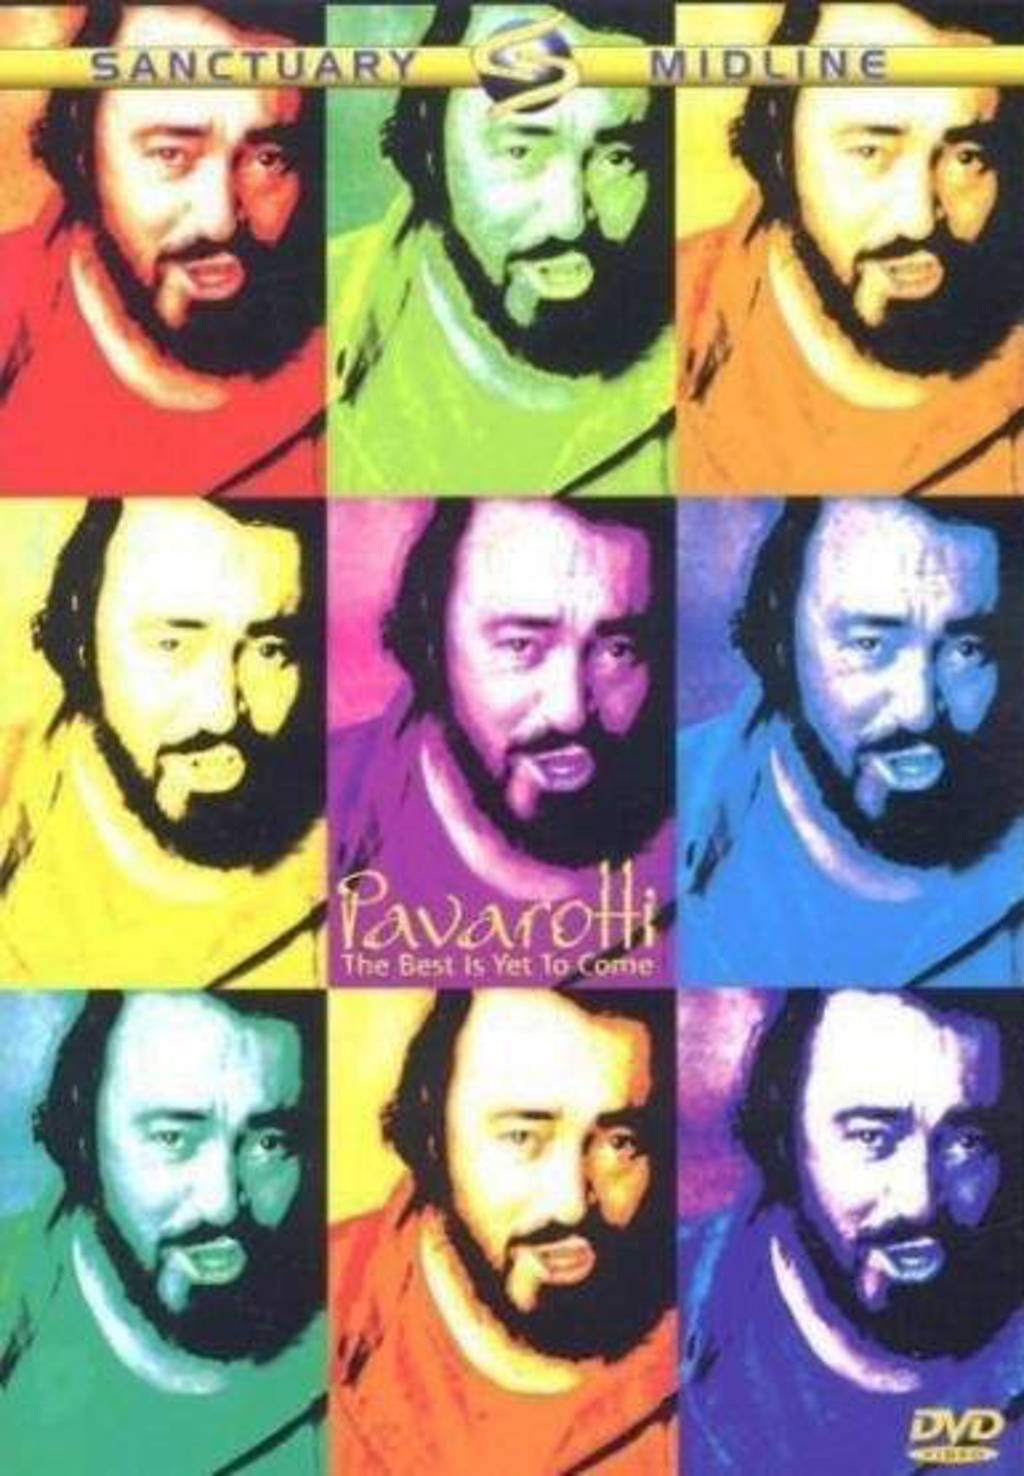 Luciano Pavarotti - Best is yet to come (DVD)